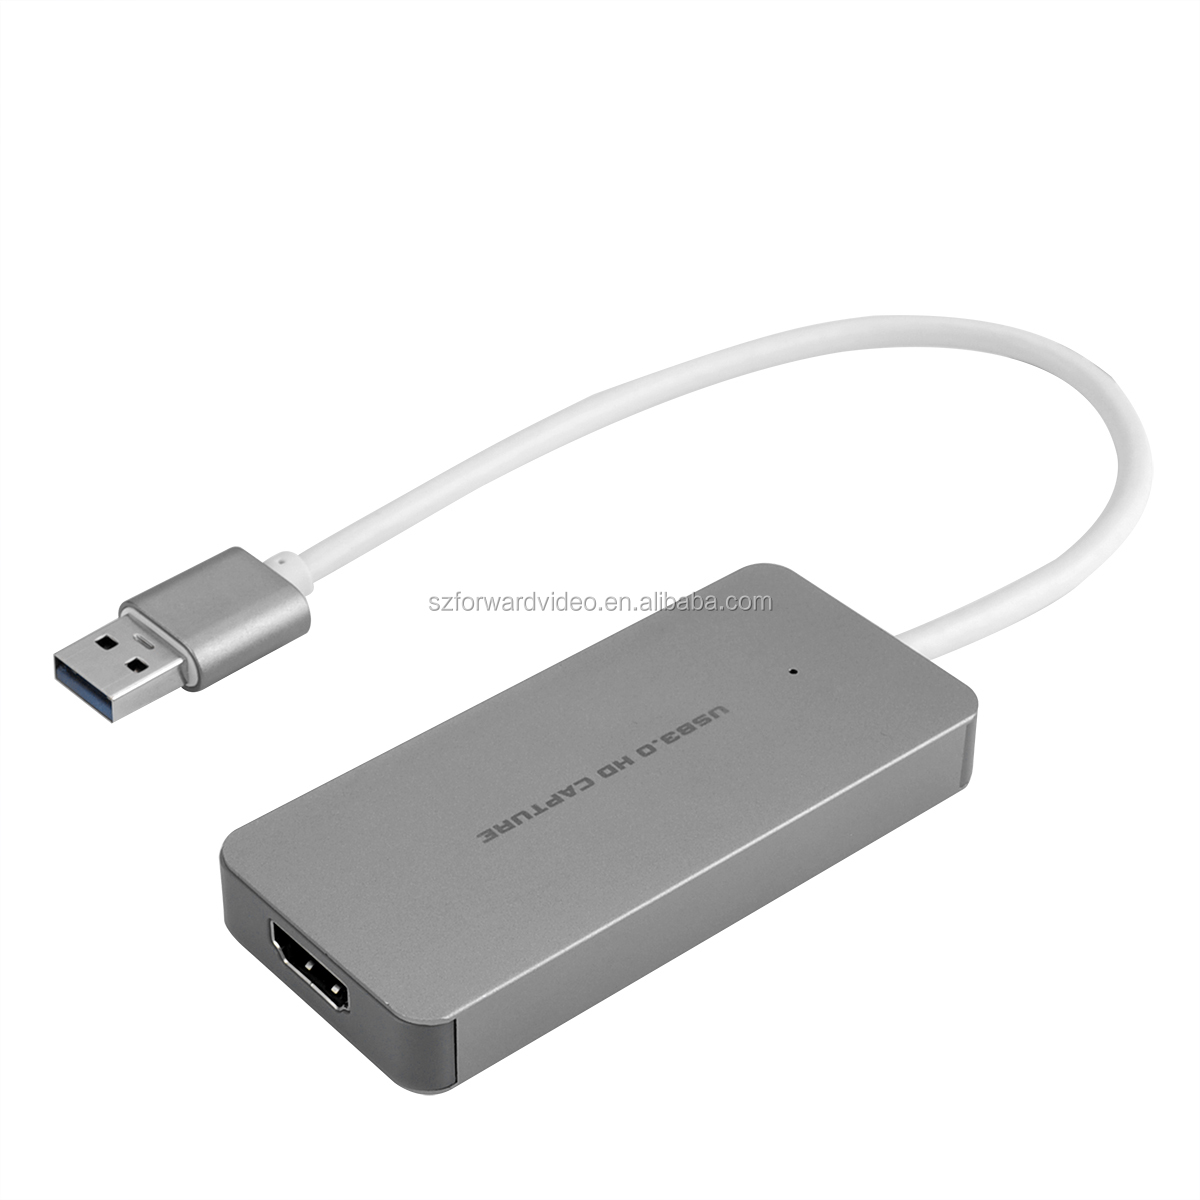 HDMI to USB3.0 UVC Video Capture Card with usb cable ezcap265